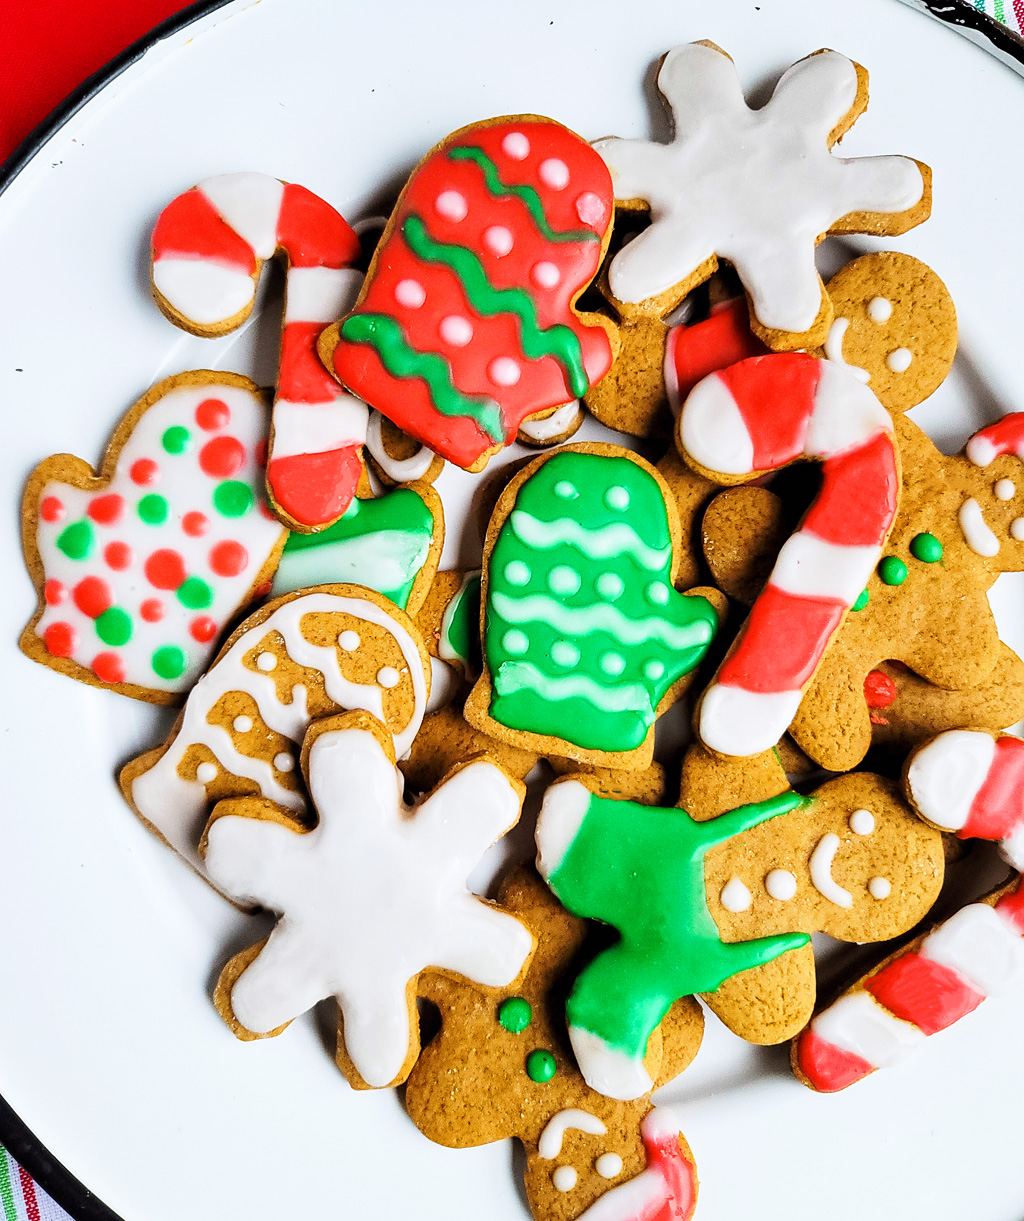 decorated gingerbread cookies with Christmas colors, red and green, on a white plate, decorated with vegan royal icing. Beautifuleatsandthings.com